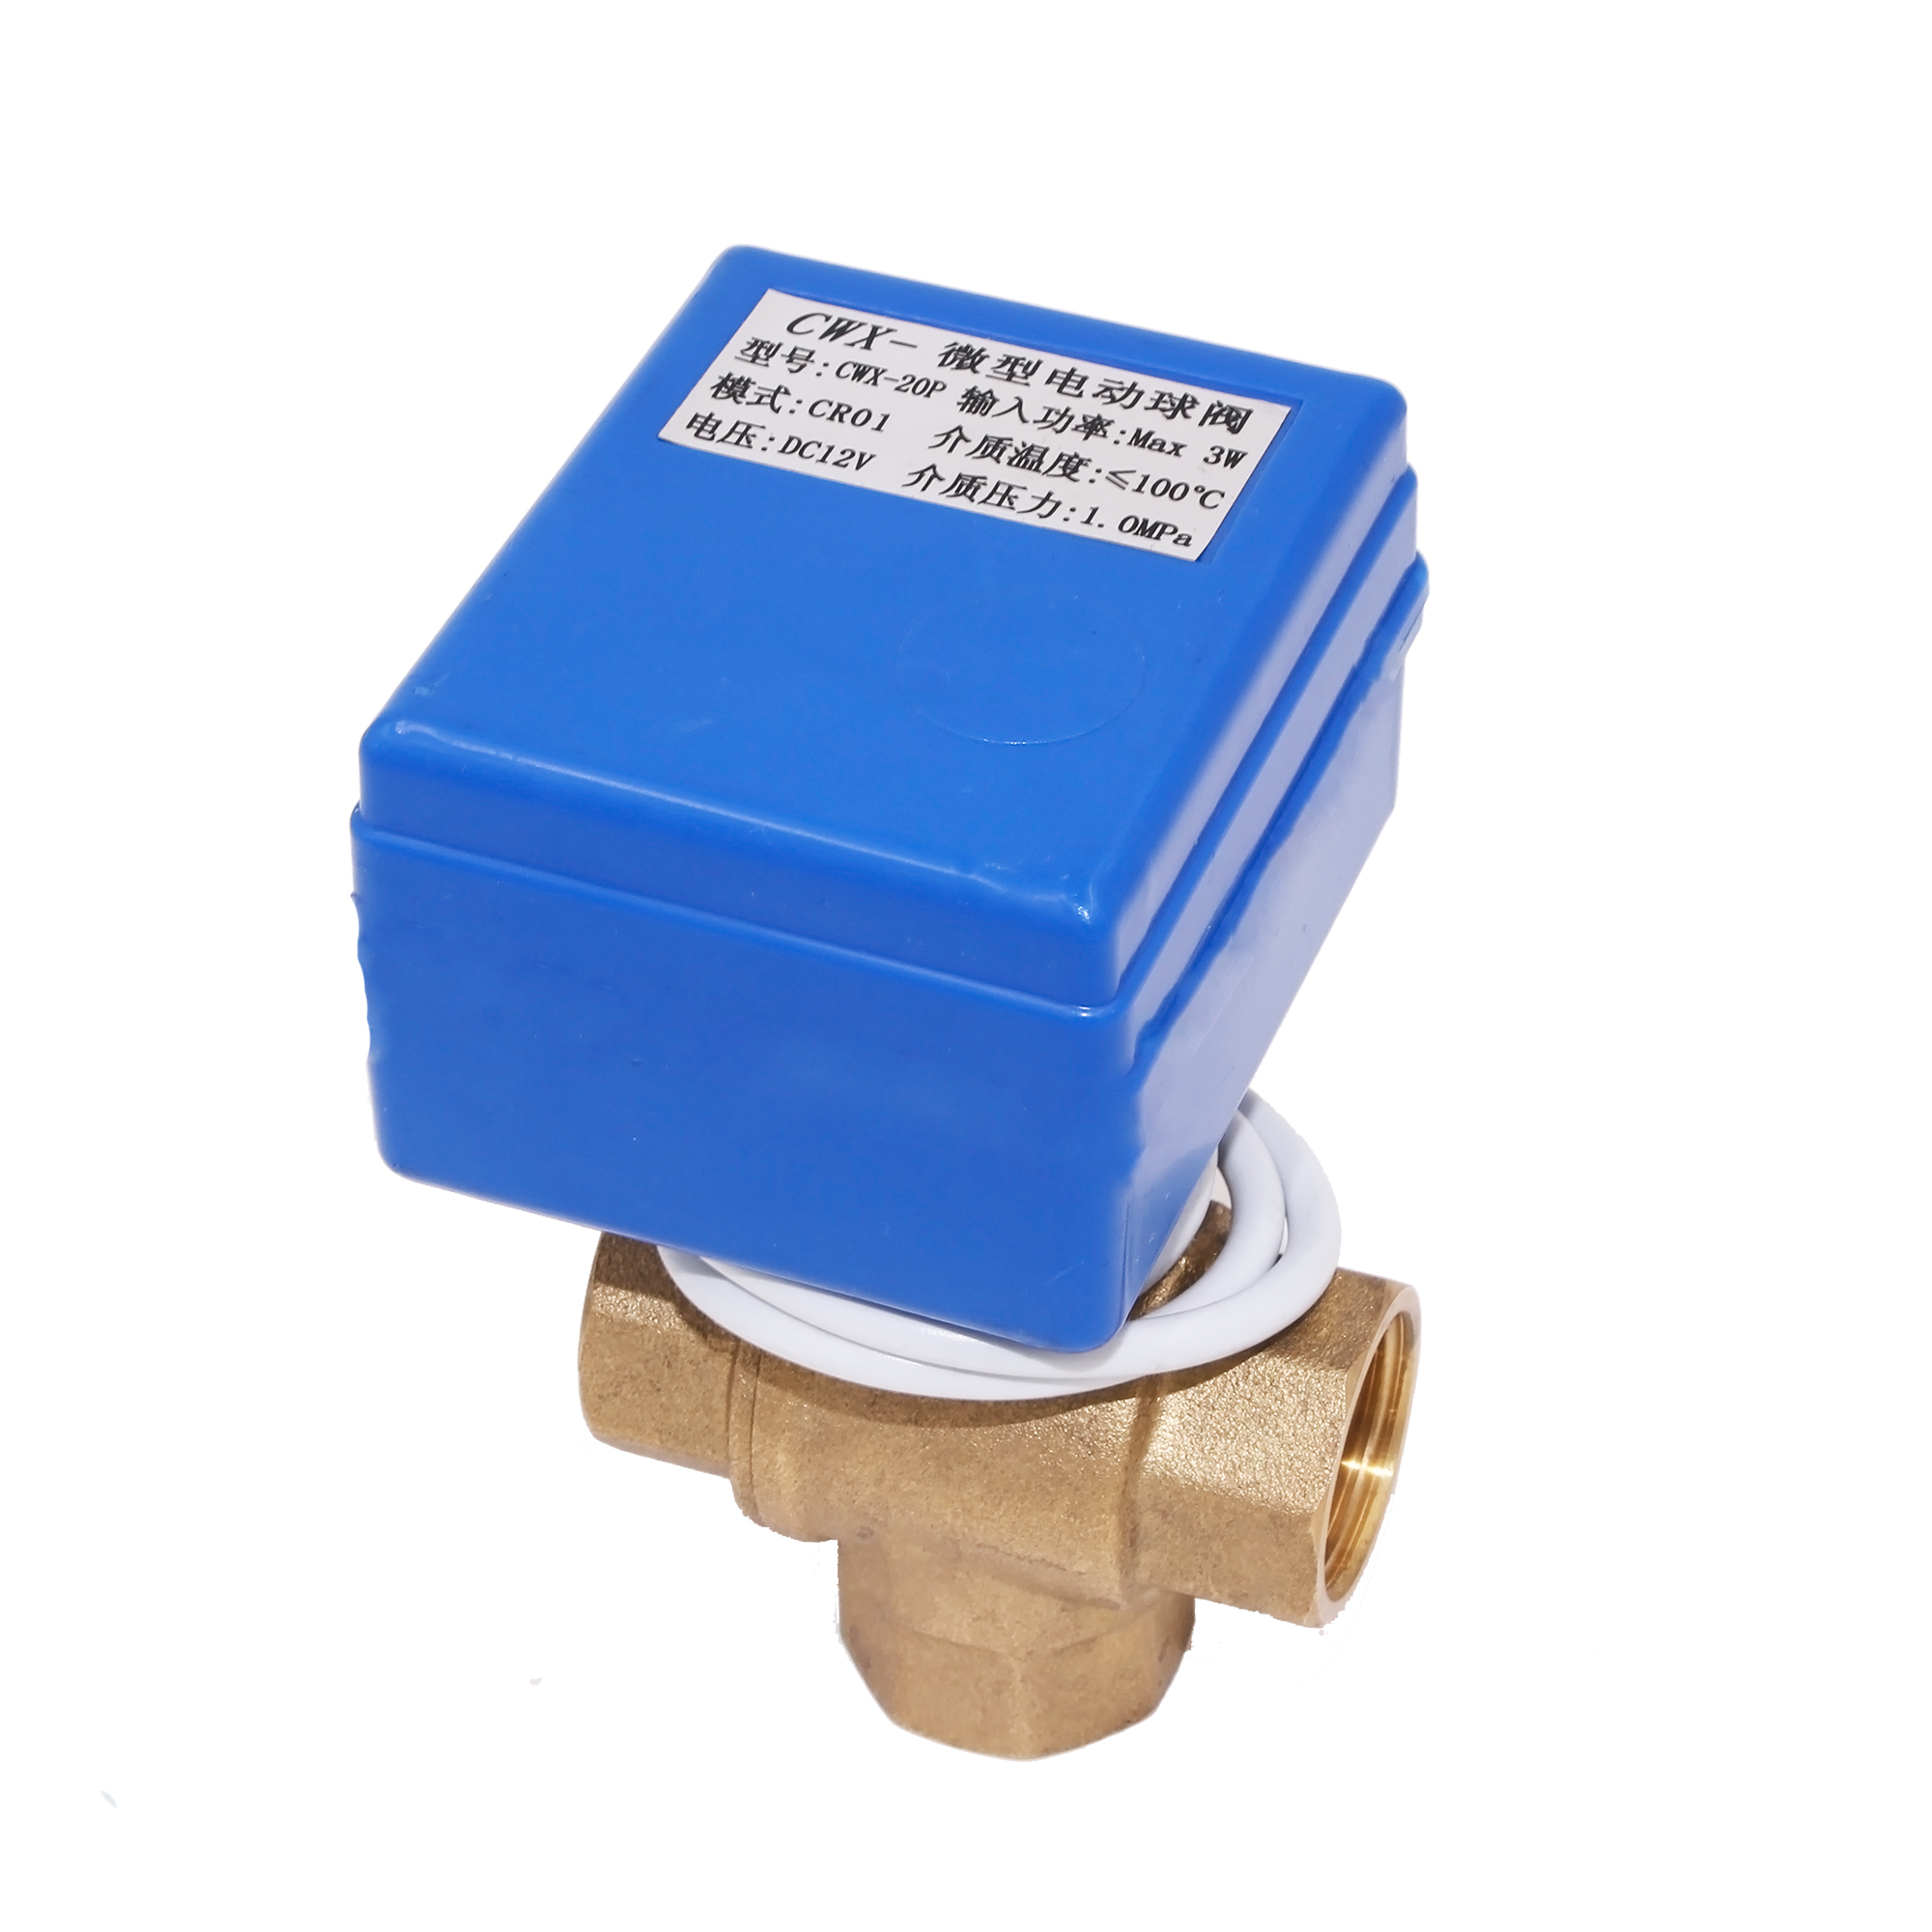 "CWX-20D 1/2"" 2way motorized bal valve for Leak detection&water shut off system,Water saving project"